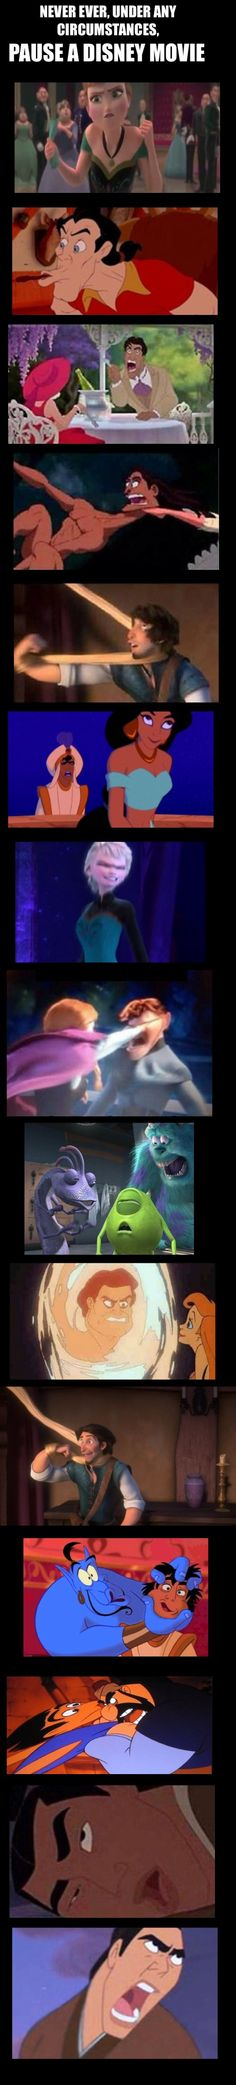 funny pauses in Disney movies :)